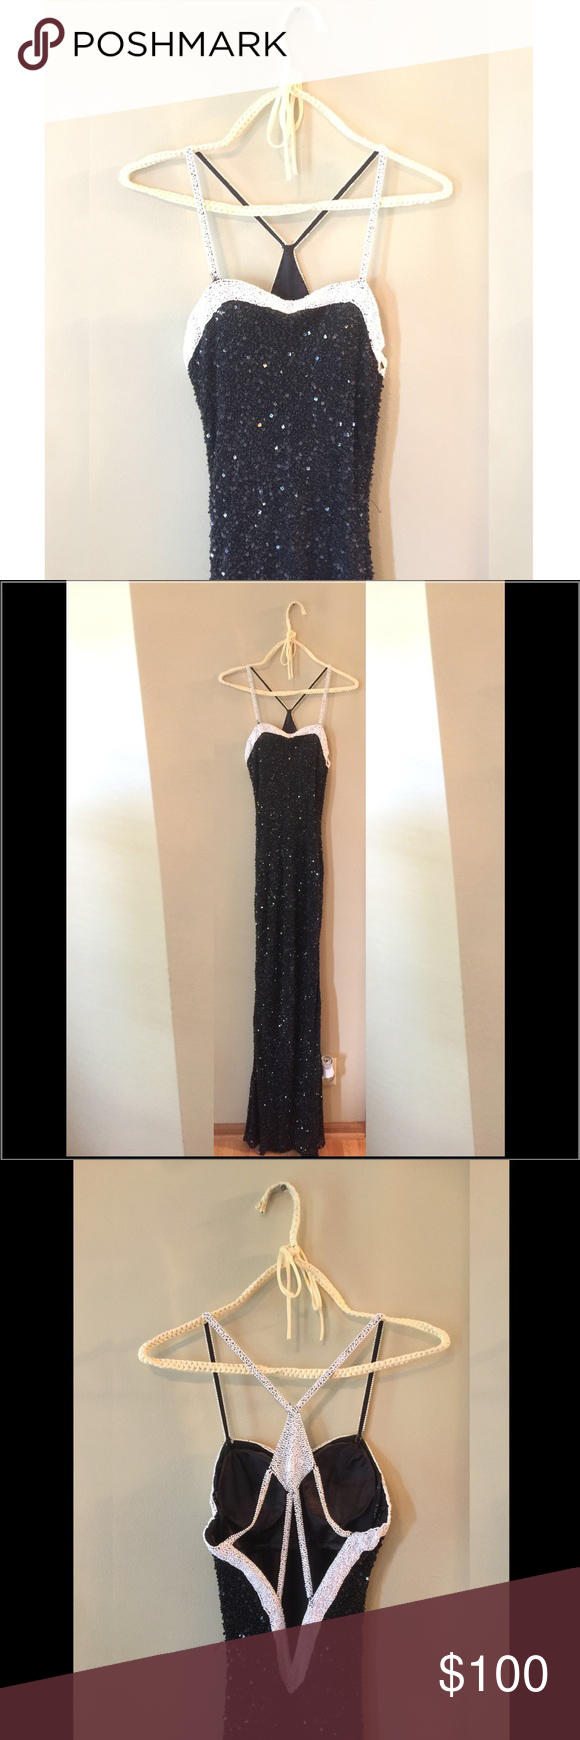 Prom Dress ✨ Black and white beaded sparkling prom dress. It looks slinky, but the material is stretchy. Beautiful back, has cups built in! Size 5/6. Unaltered. Scala Dresses Prom